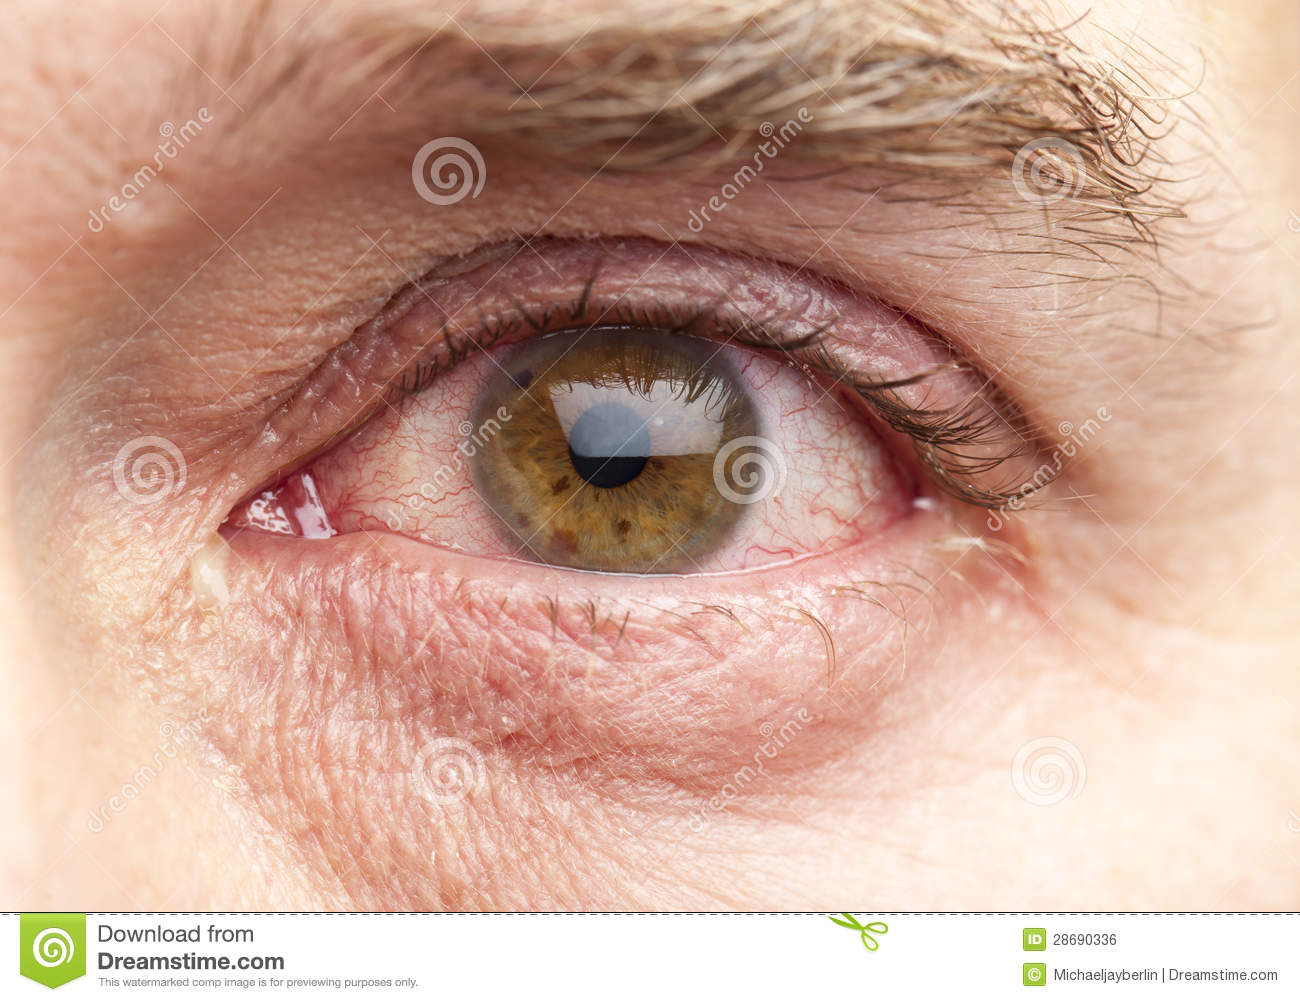 Human Eye Of A 40 Year Old Man With Brown Iris And A Slight Infection